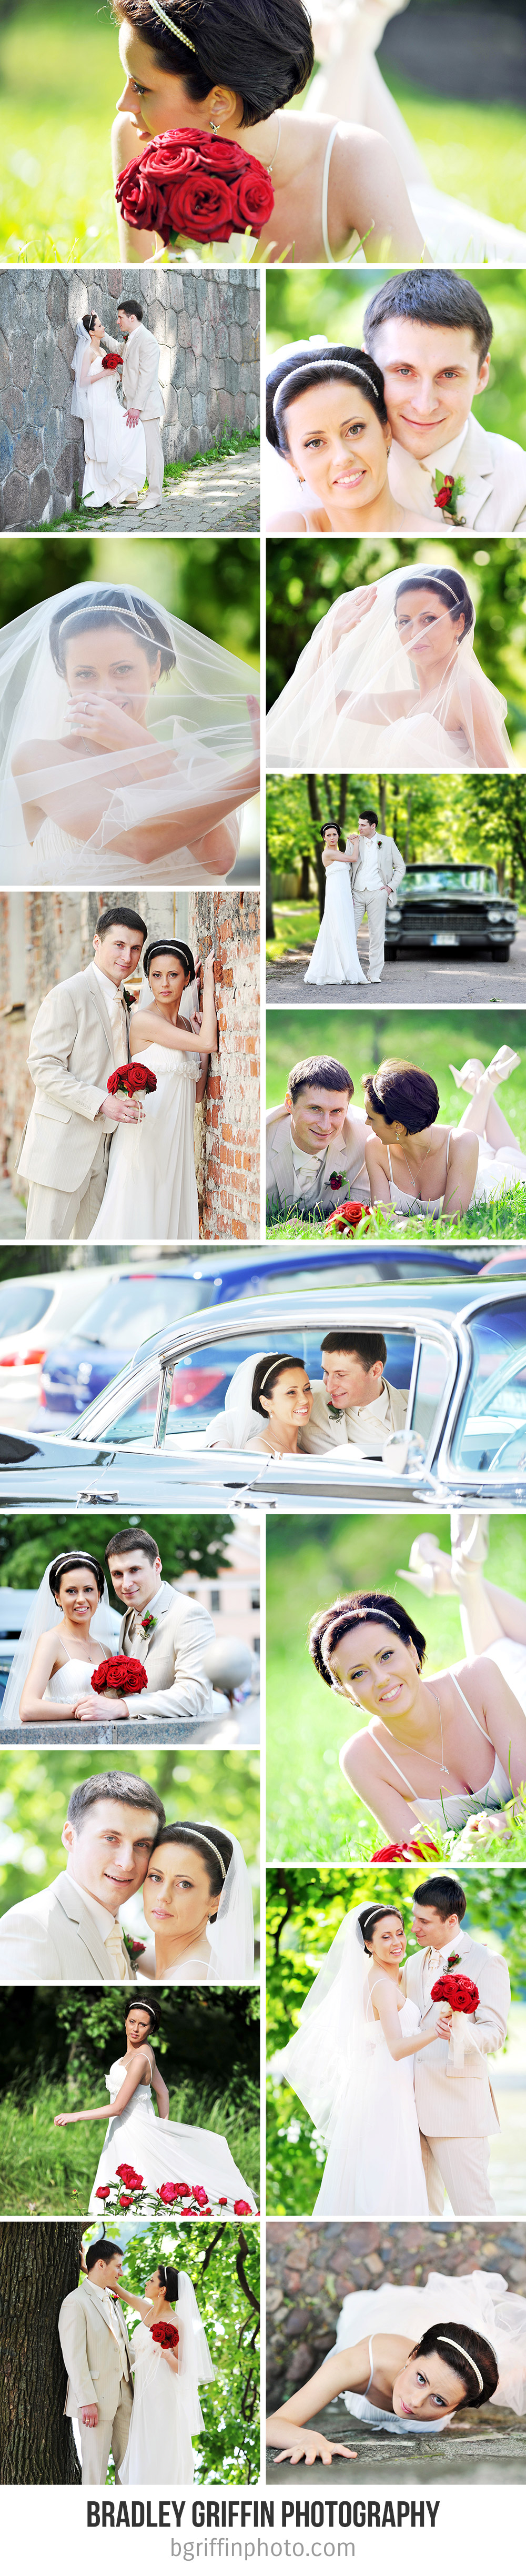 Customize 697 Wedding Photo Collage templates online  Canva